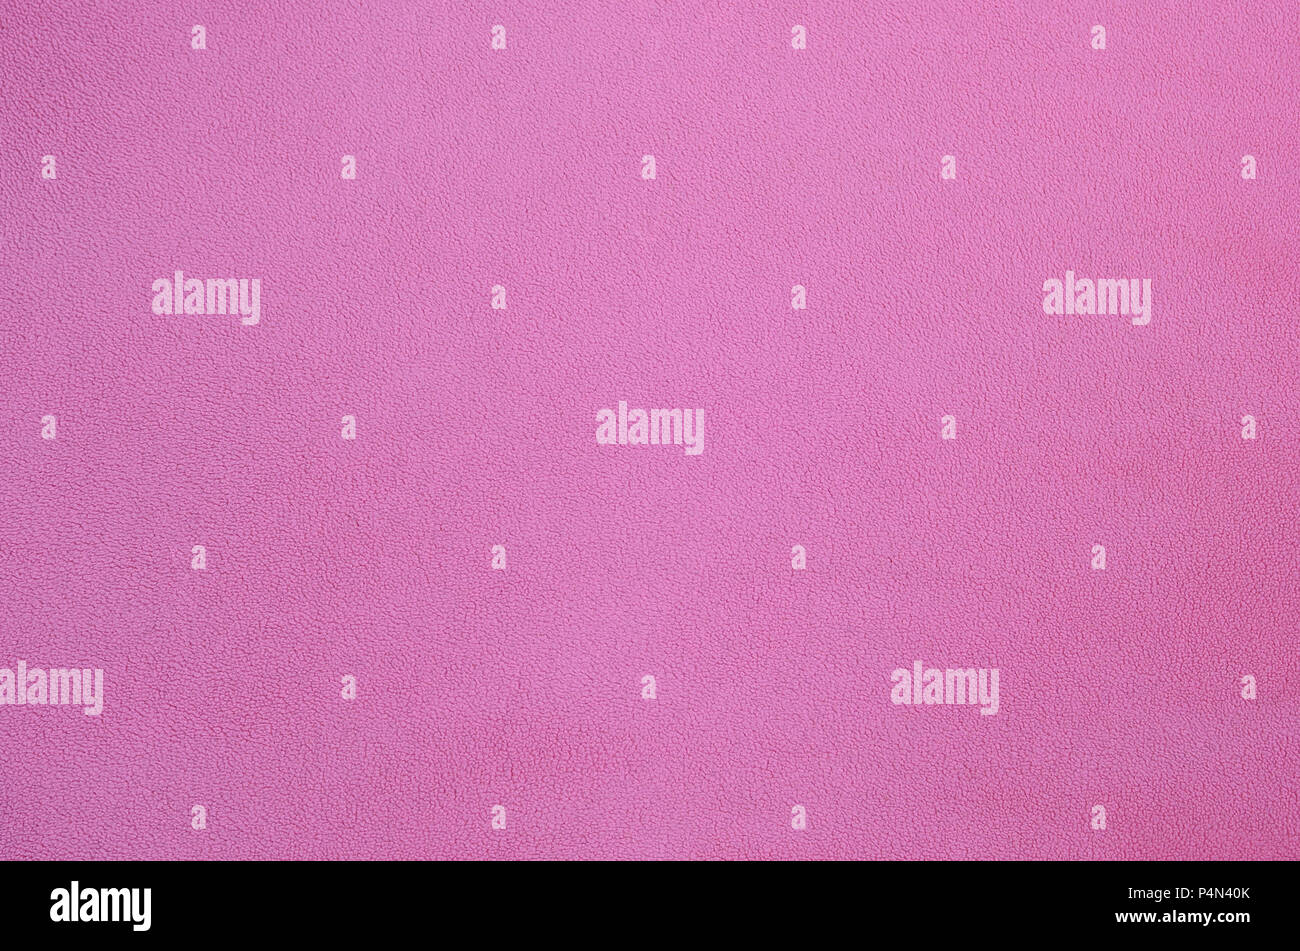 Soft Blanket Texture With The Blanket Of Furry Pink Fleece Fabric Background Texture Light Soft Plush Material